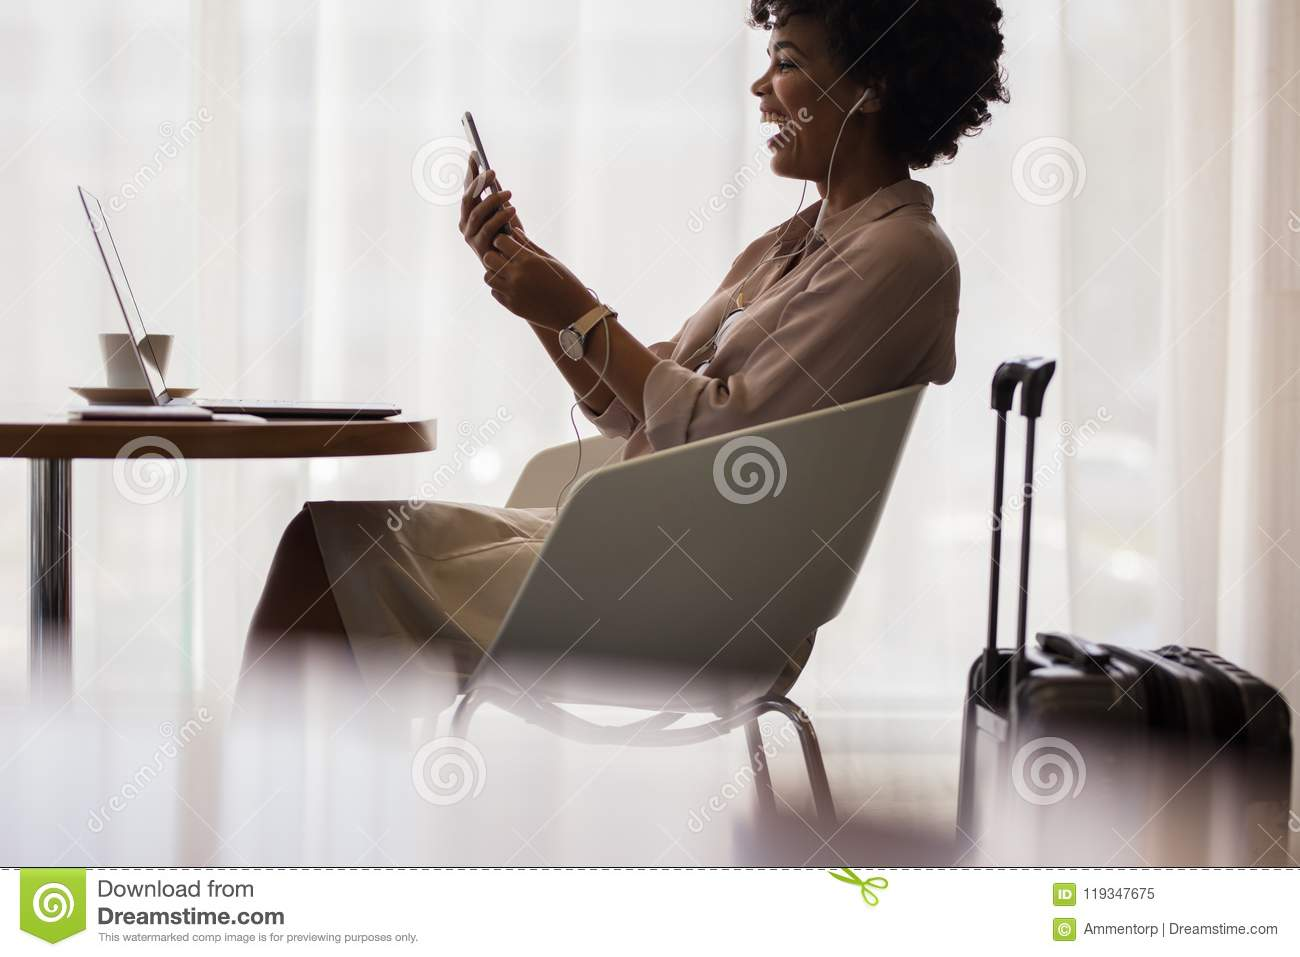 Businesswoman making video call at airport lounge